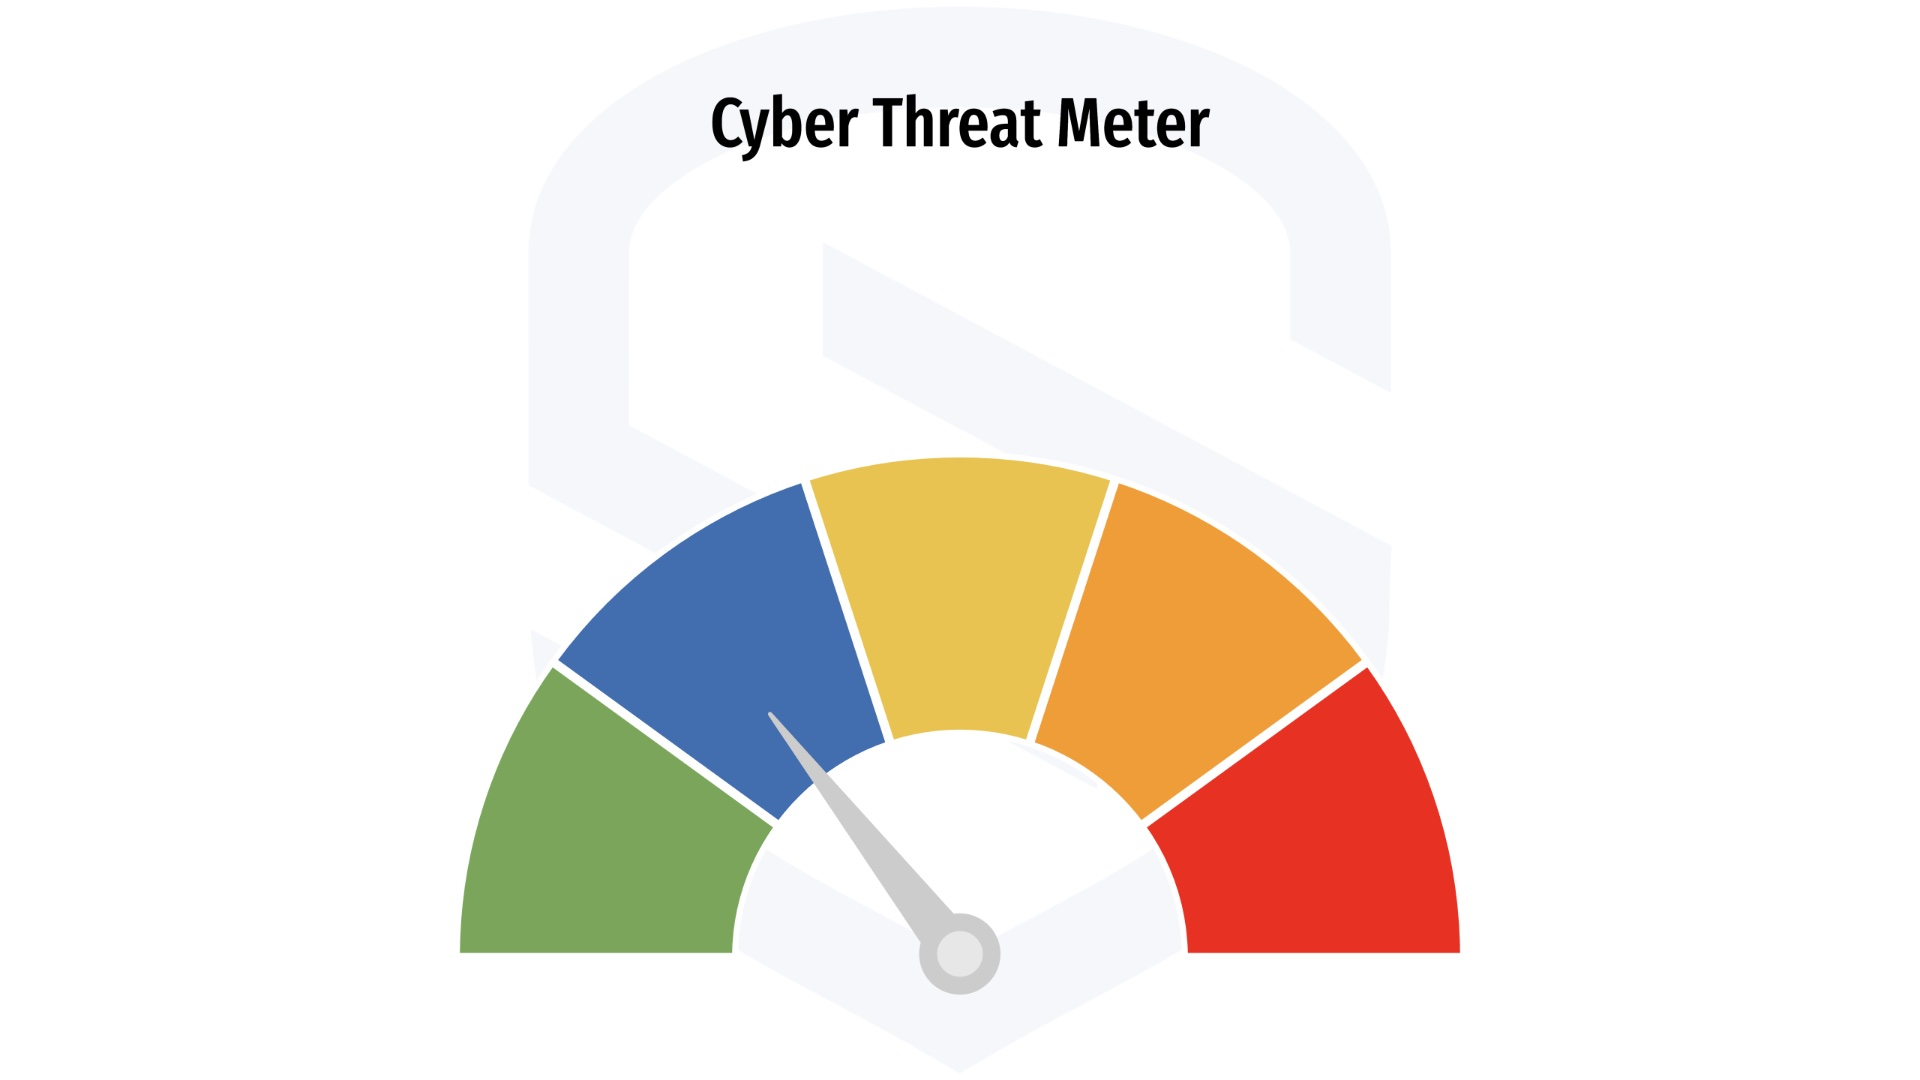 Cyber Threat Meter by Cyberprotech